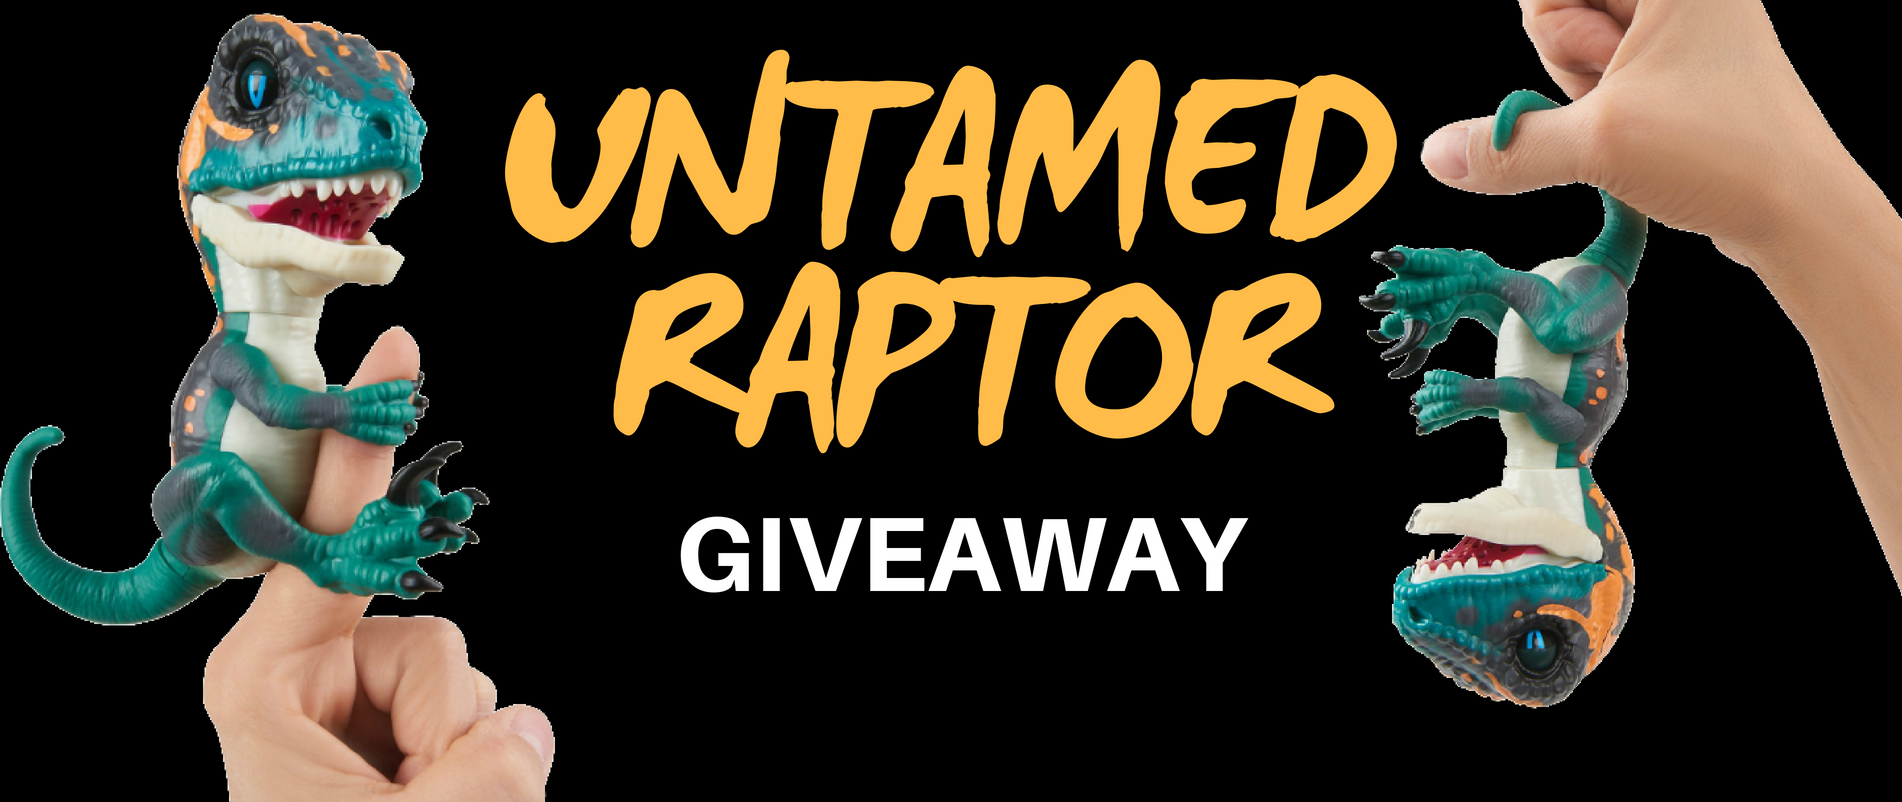 """Untamed Raptor"" Instagram Giveaway"